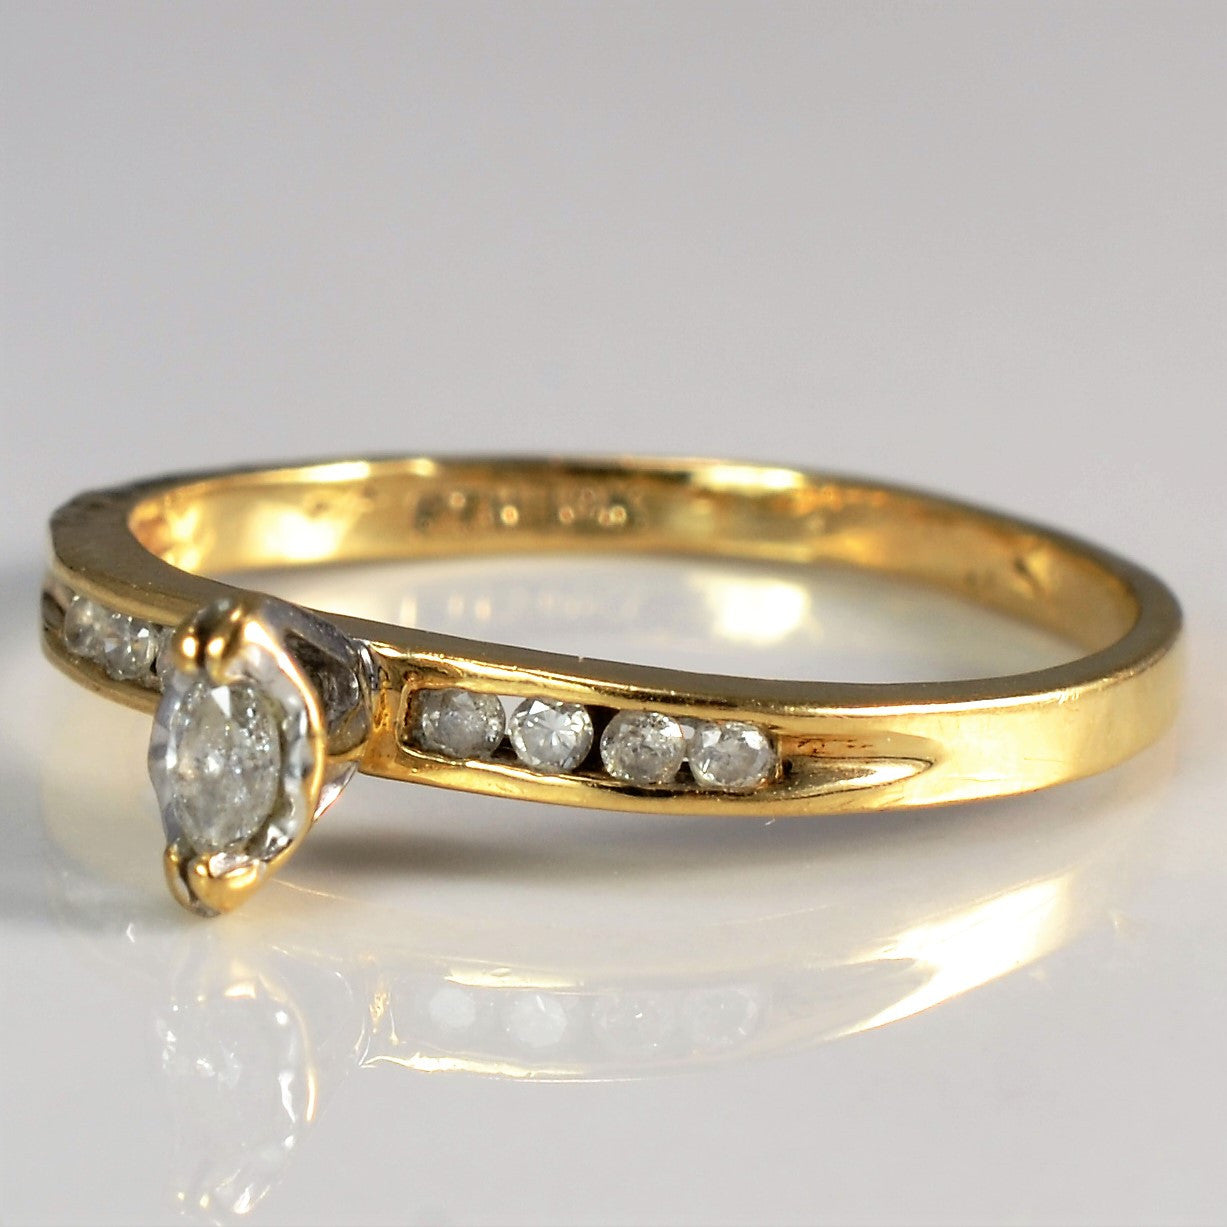 Marquise Cut Diamond Ring | 0.15 ctw, SZ 7 |